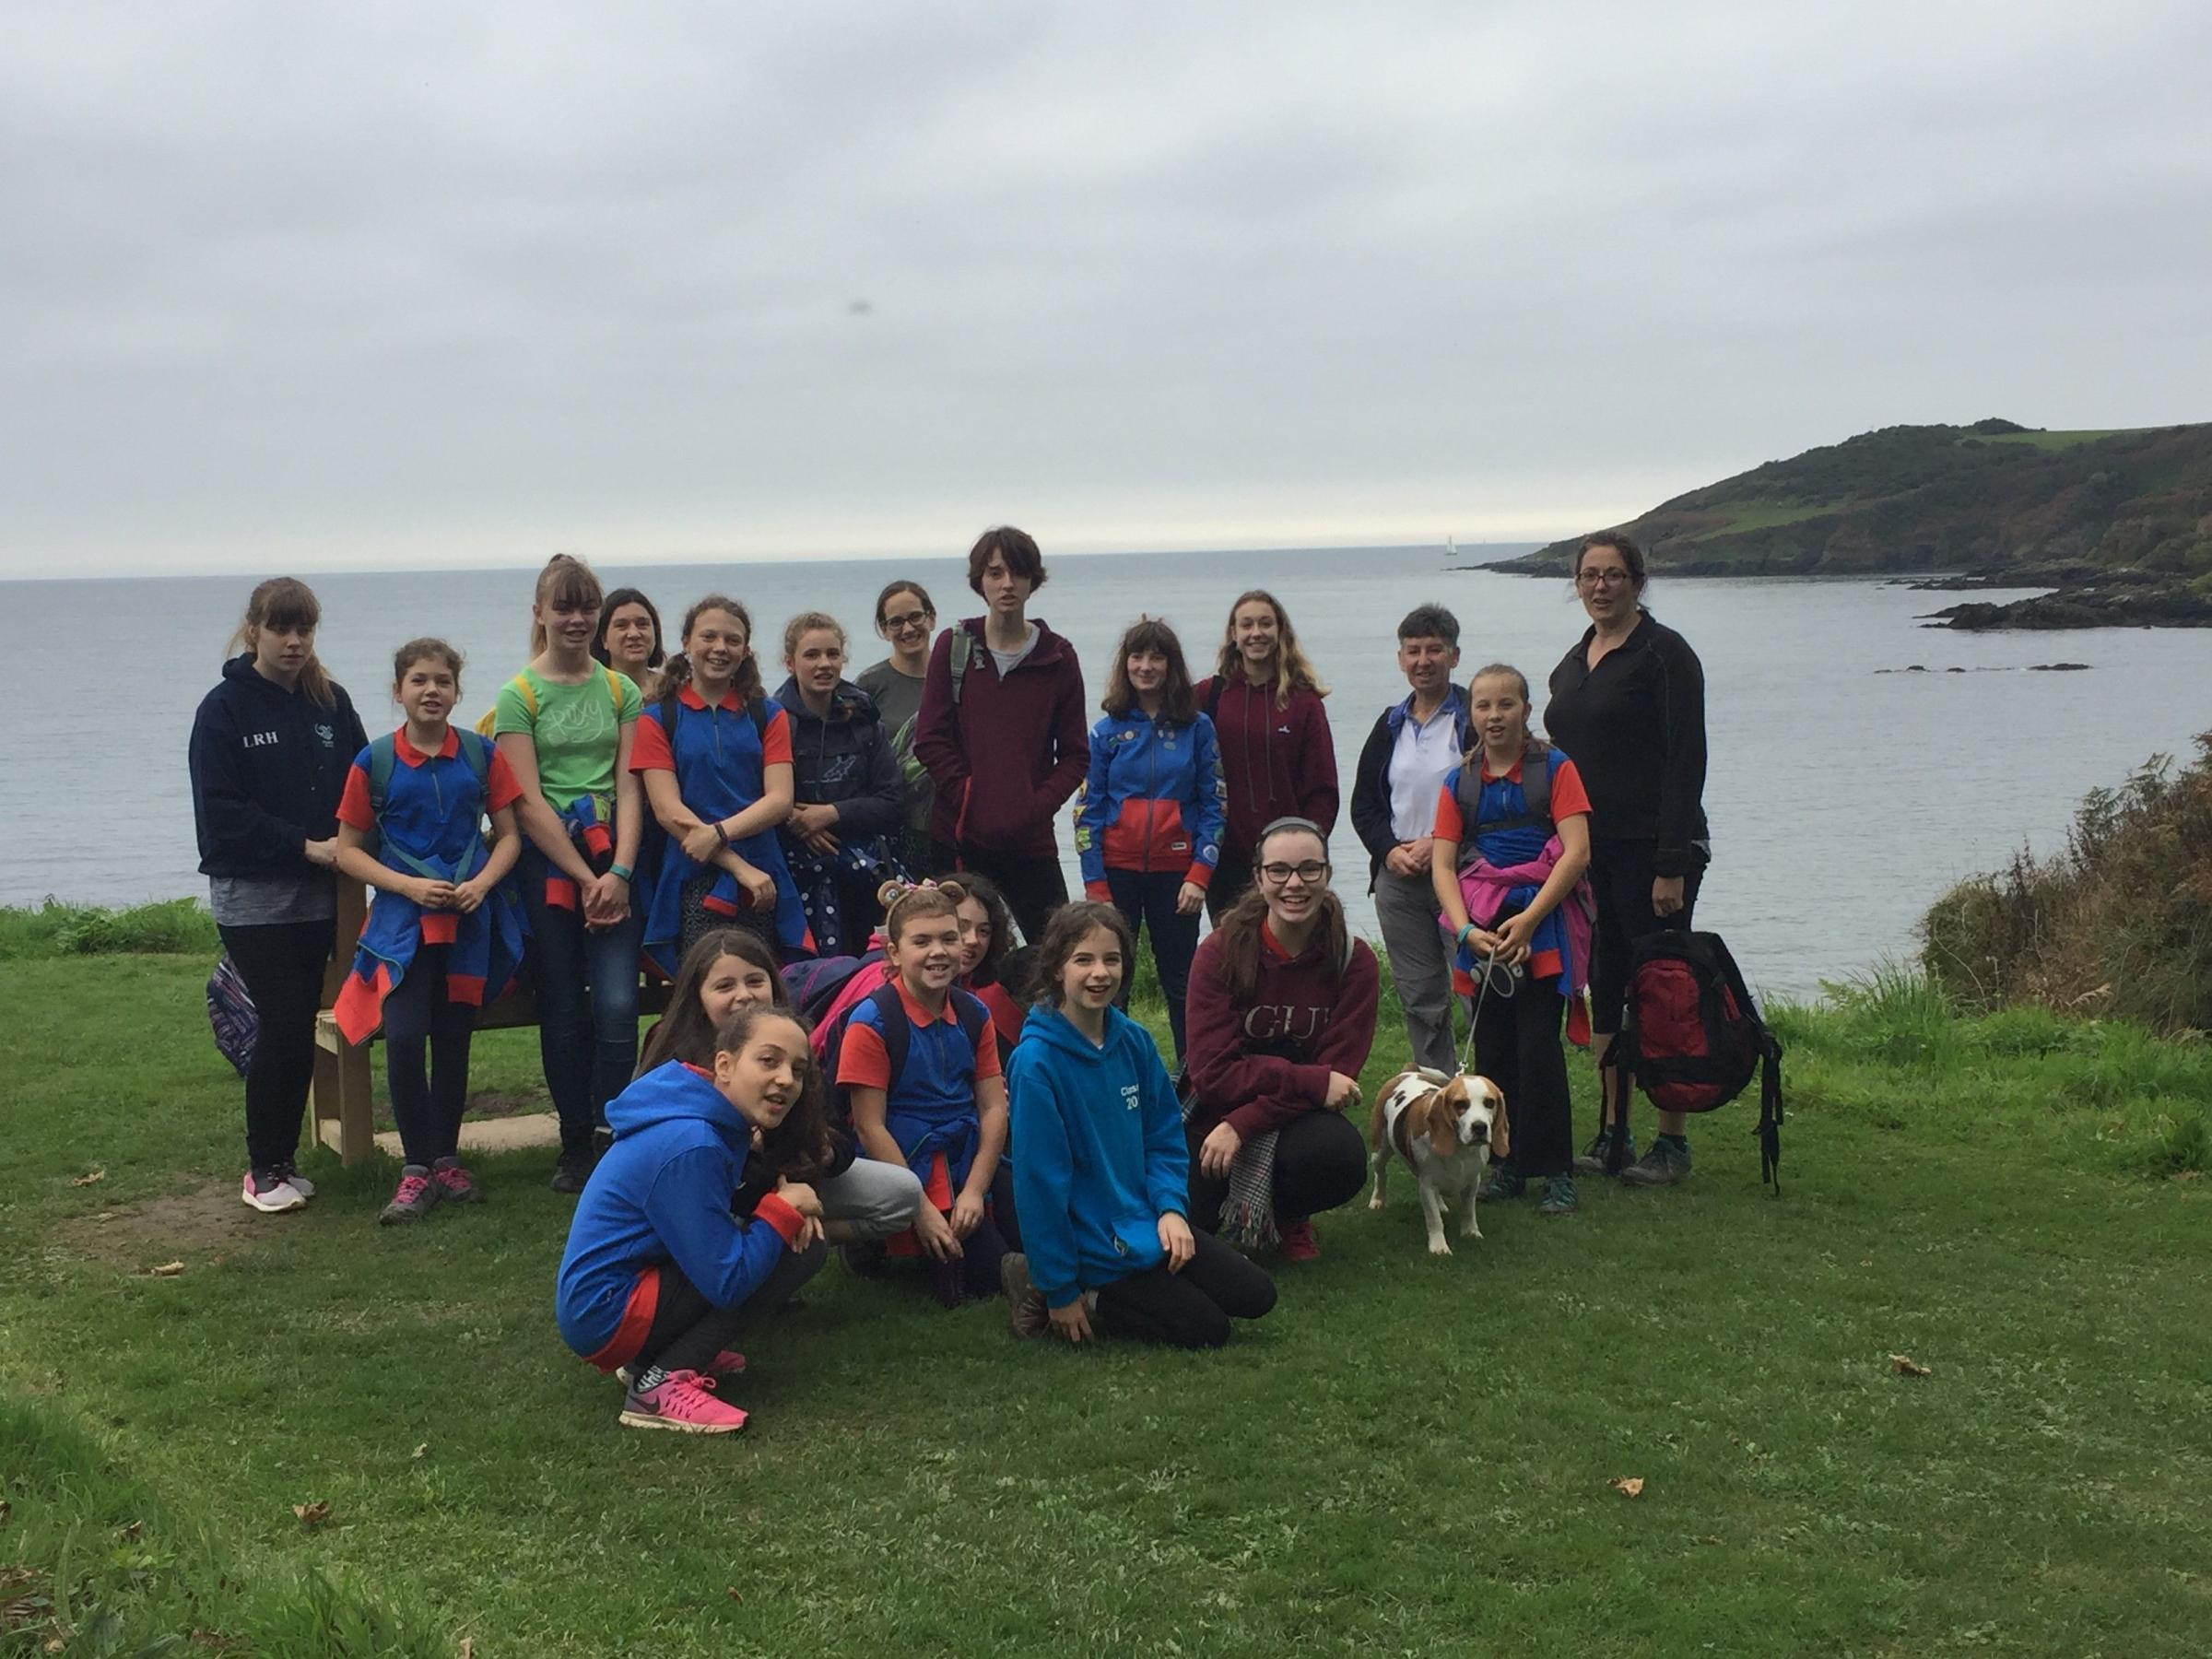 The Guides raised £1,500 with their walk